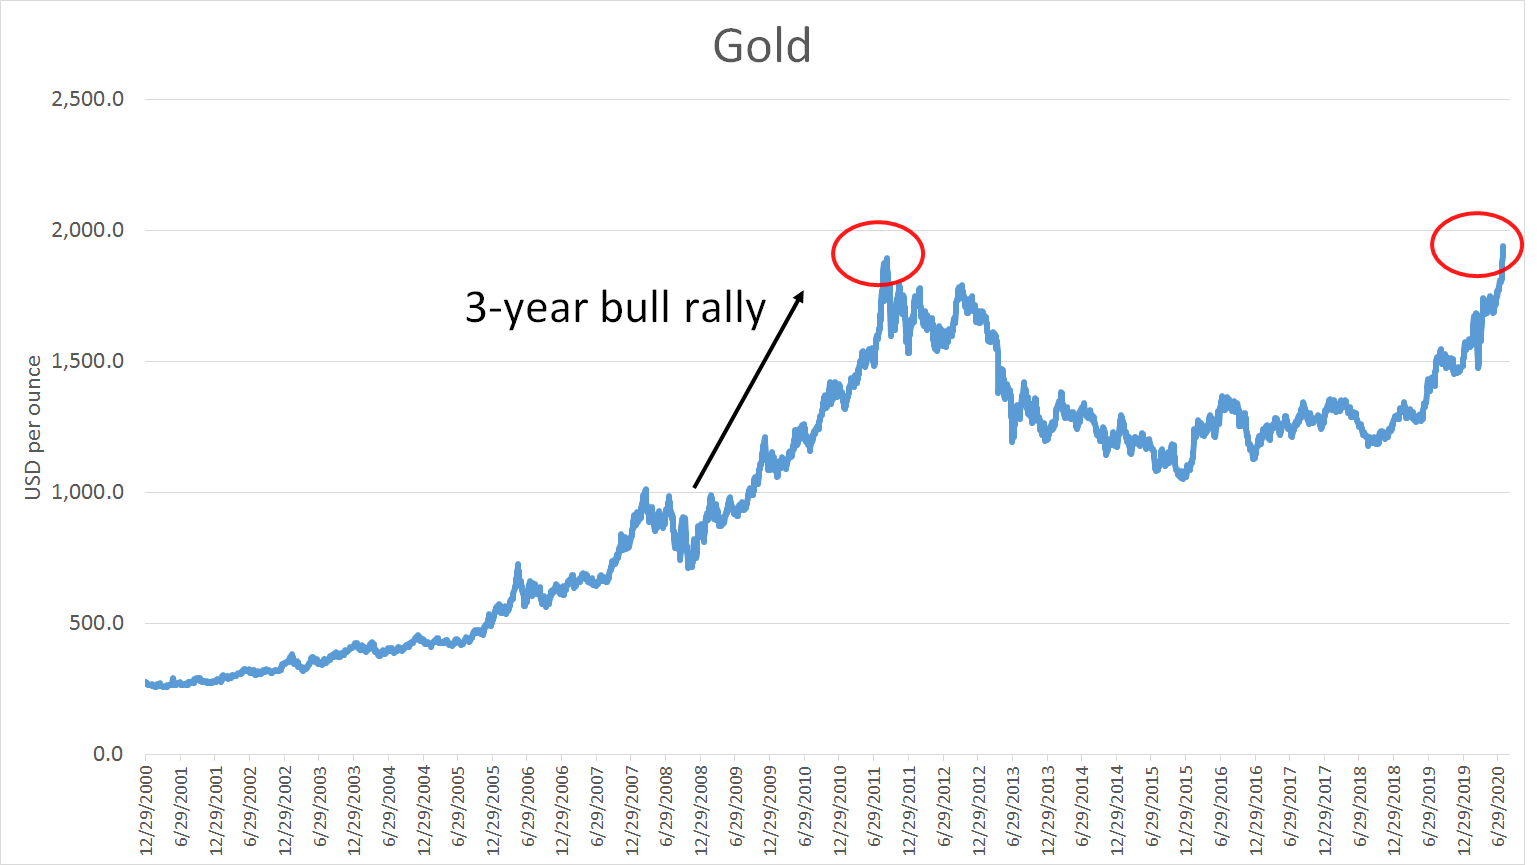 gold price today july 28 may not stop increase until hitting 4000